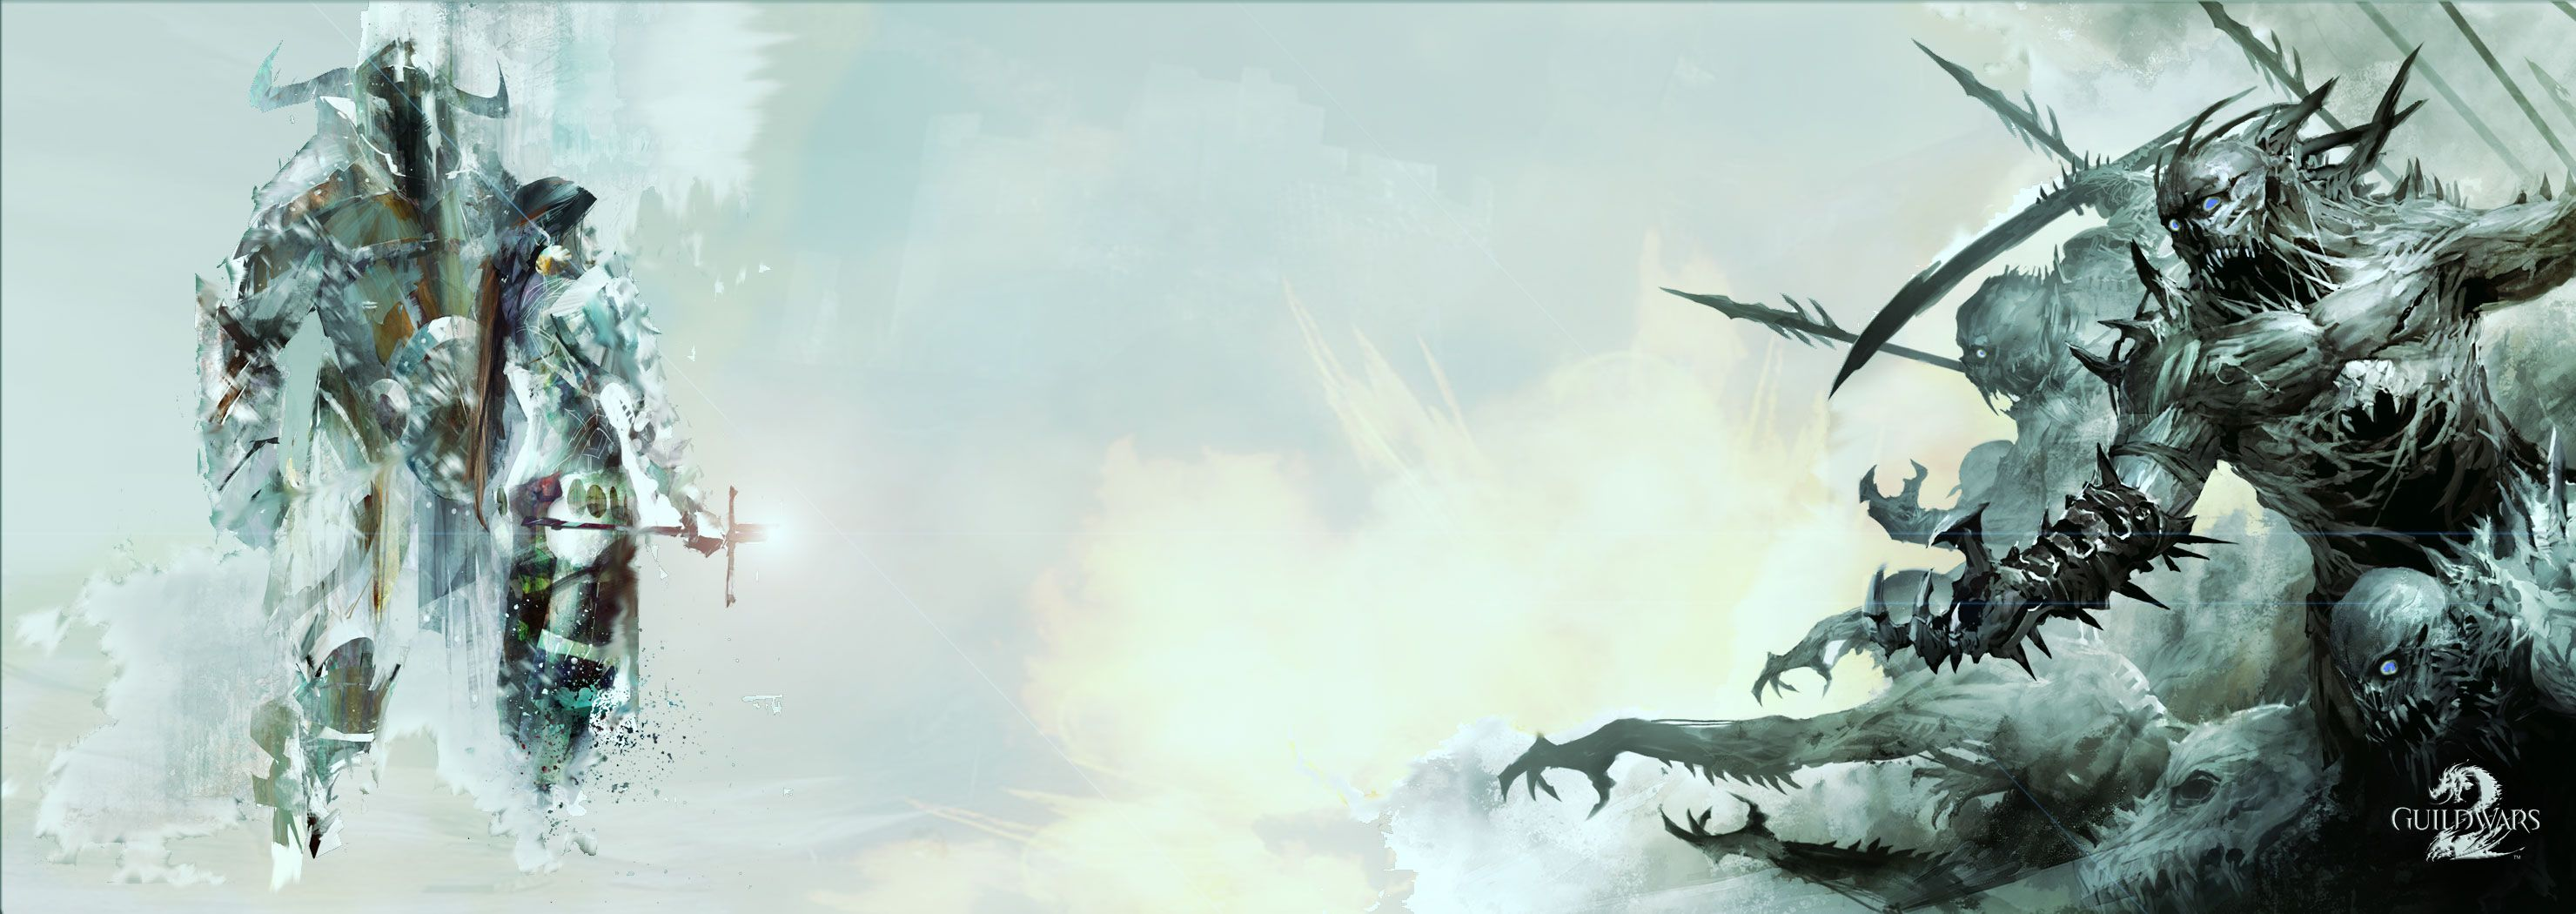 A Guild Wars 2 Wallpaper for the resolution 2960 x 1050 (dual